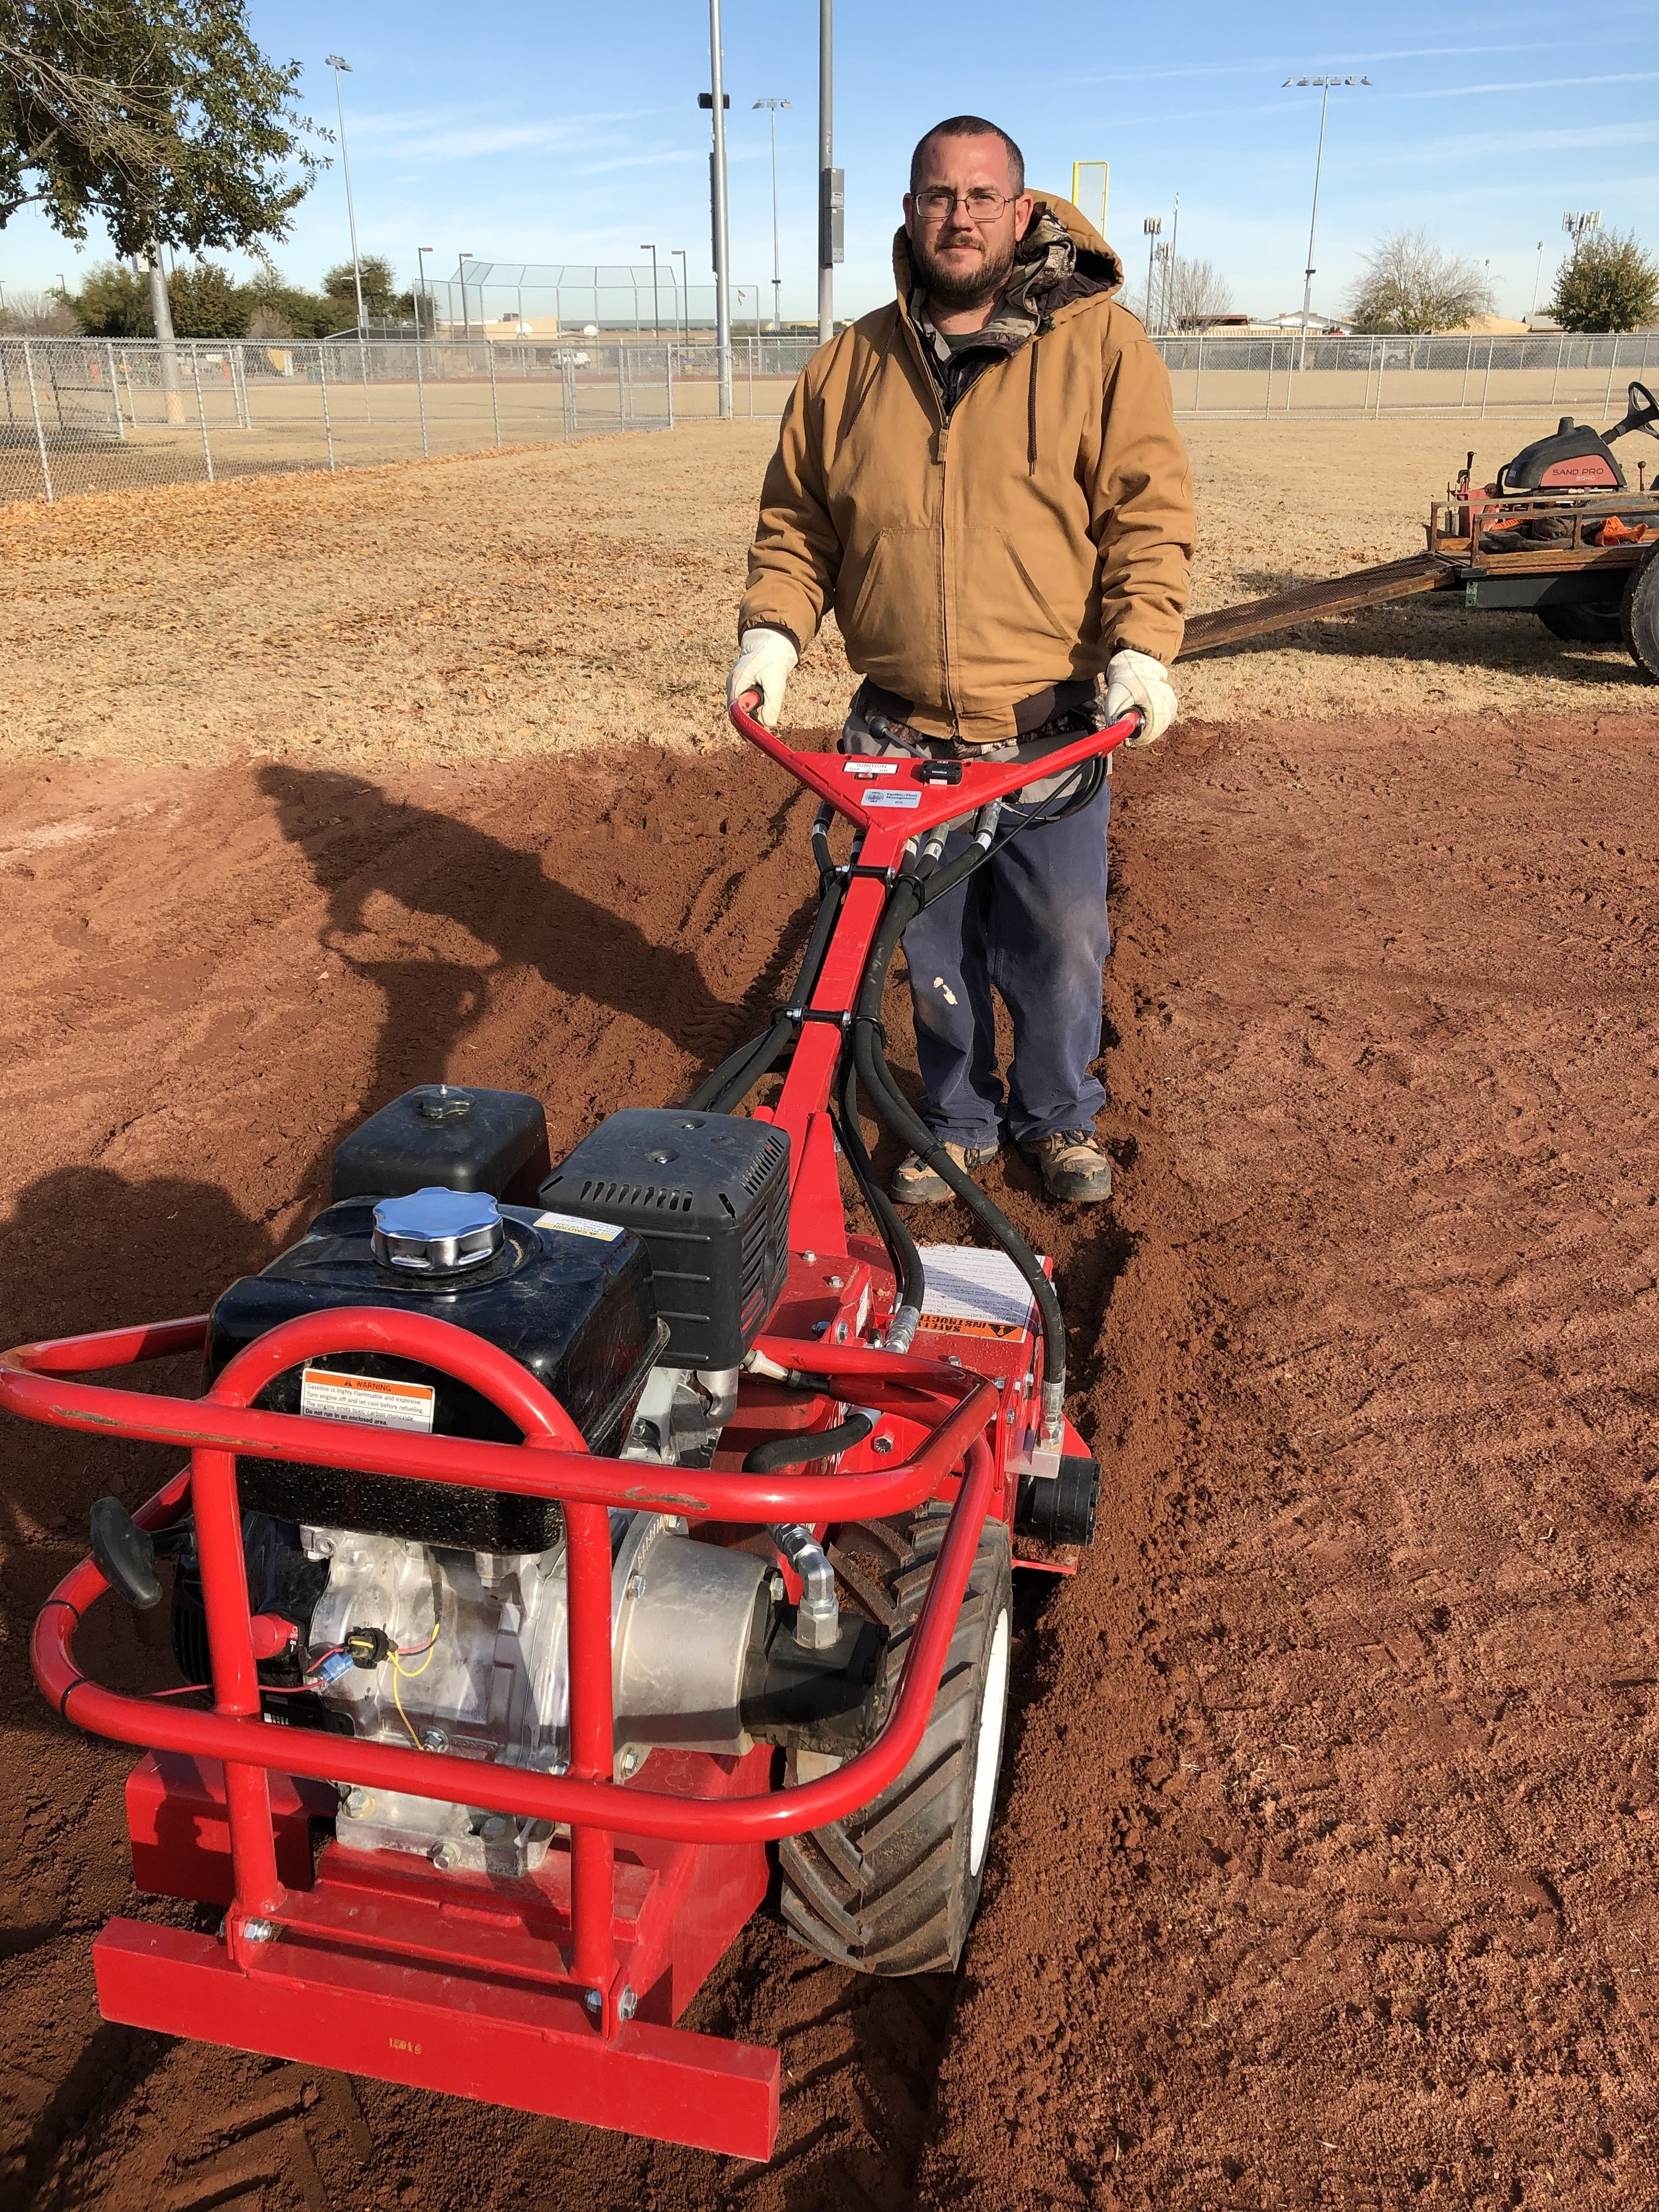 The rototiller breaks up the infield clay so that it may be redistributed and leveled.